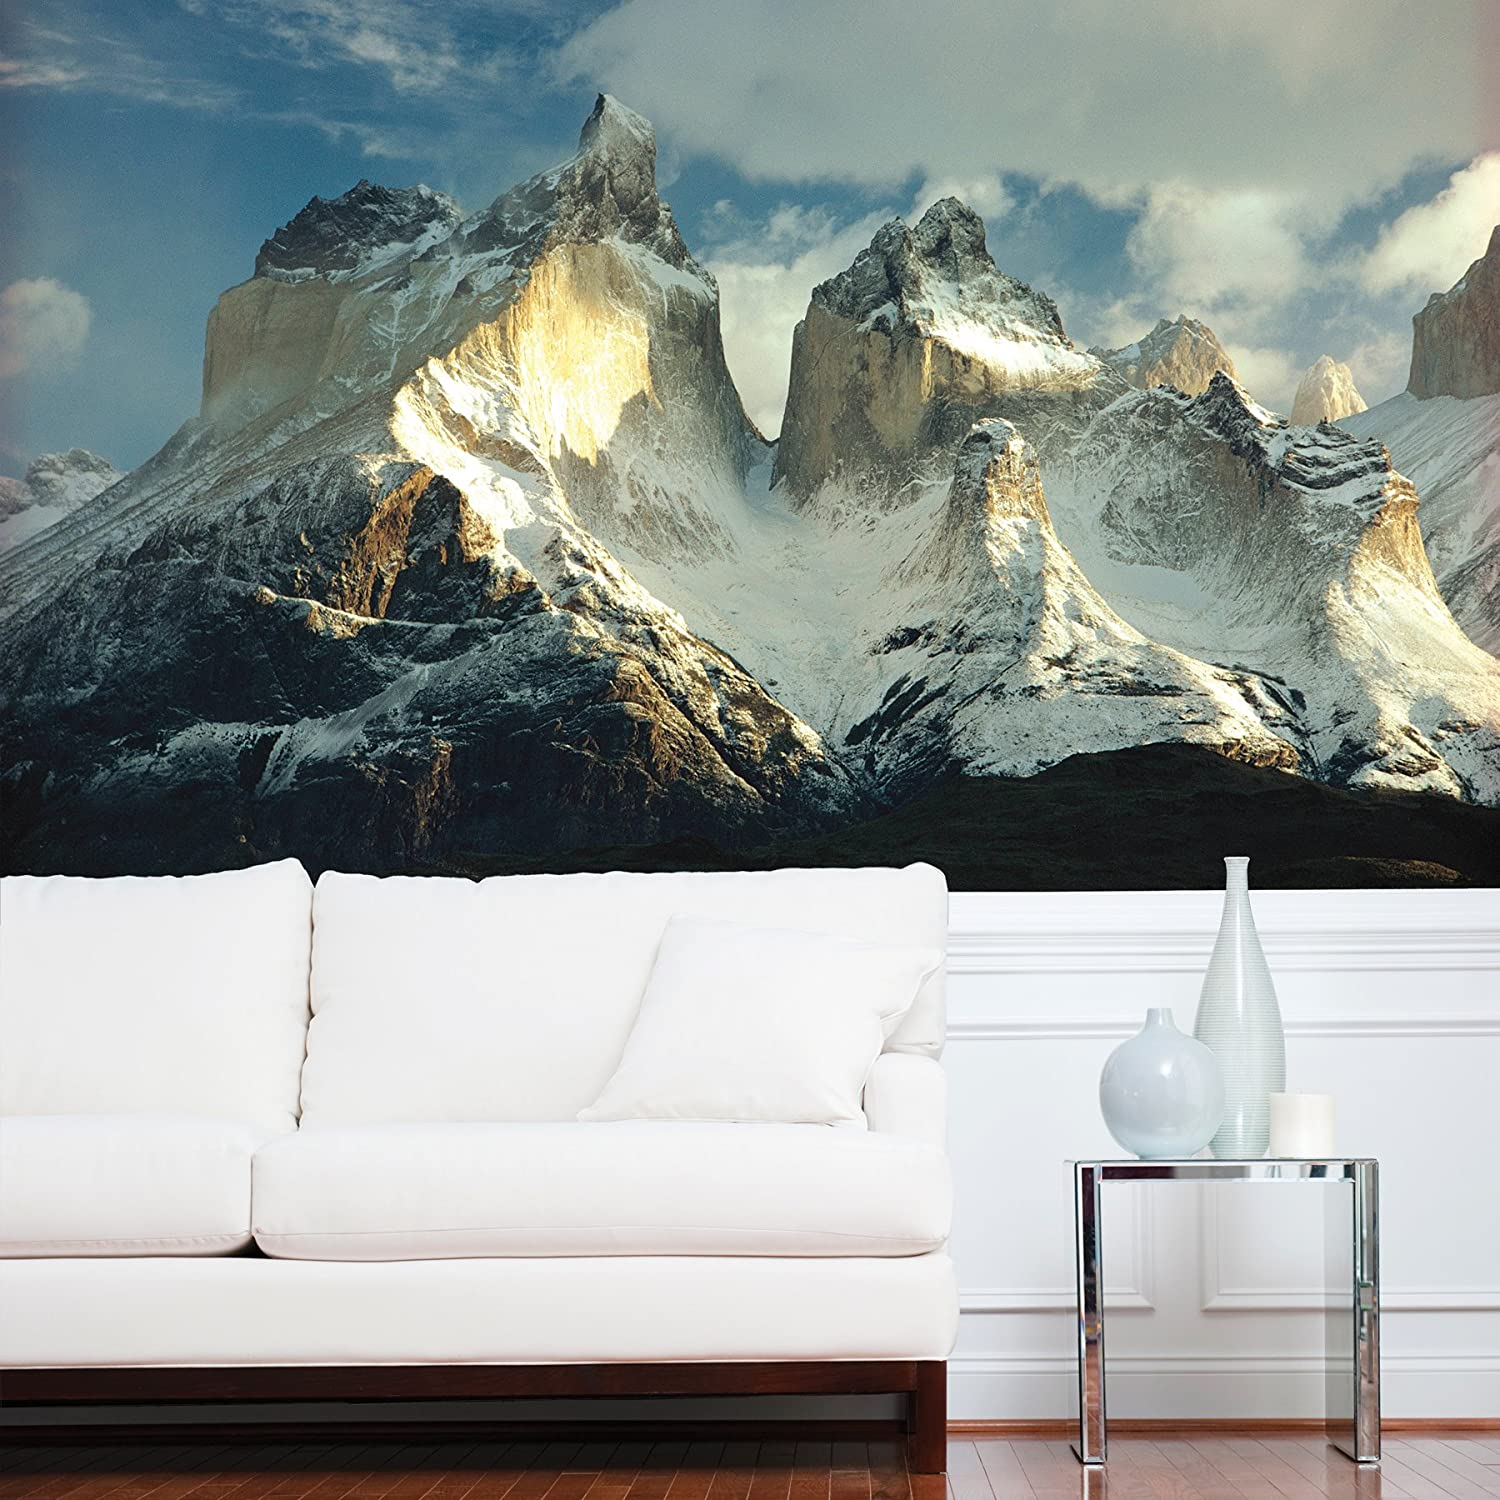 Wonderful Wallpaper Mountain Wall - 9196VwmhhoL  Perfect Image Reference_47585.jpg